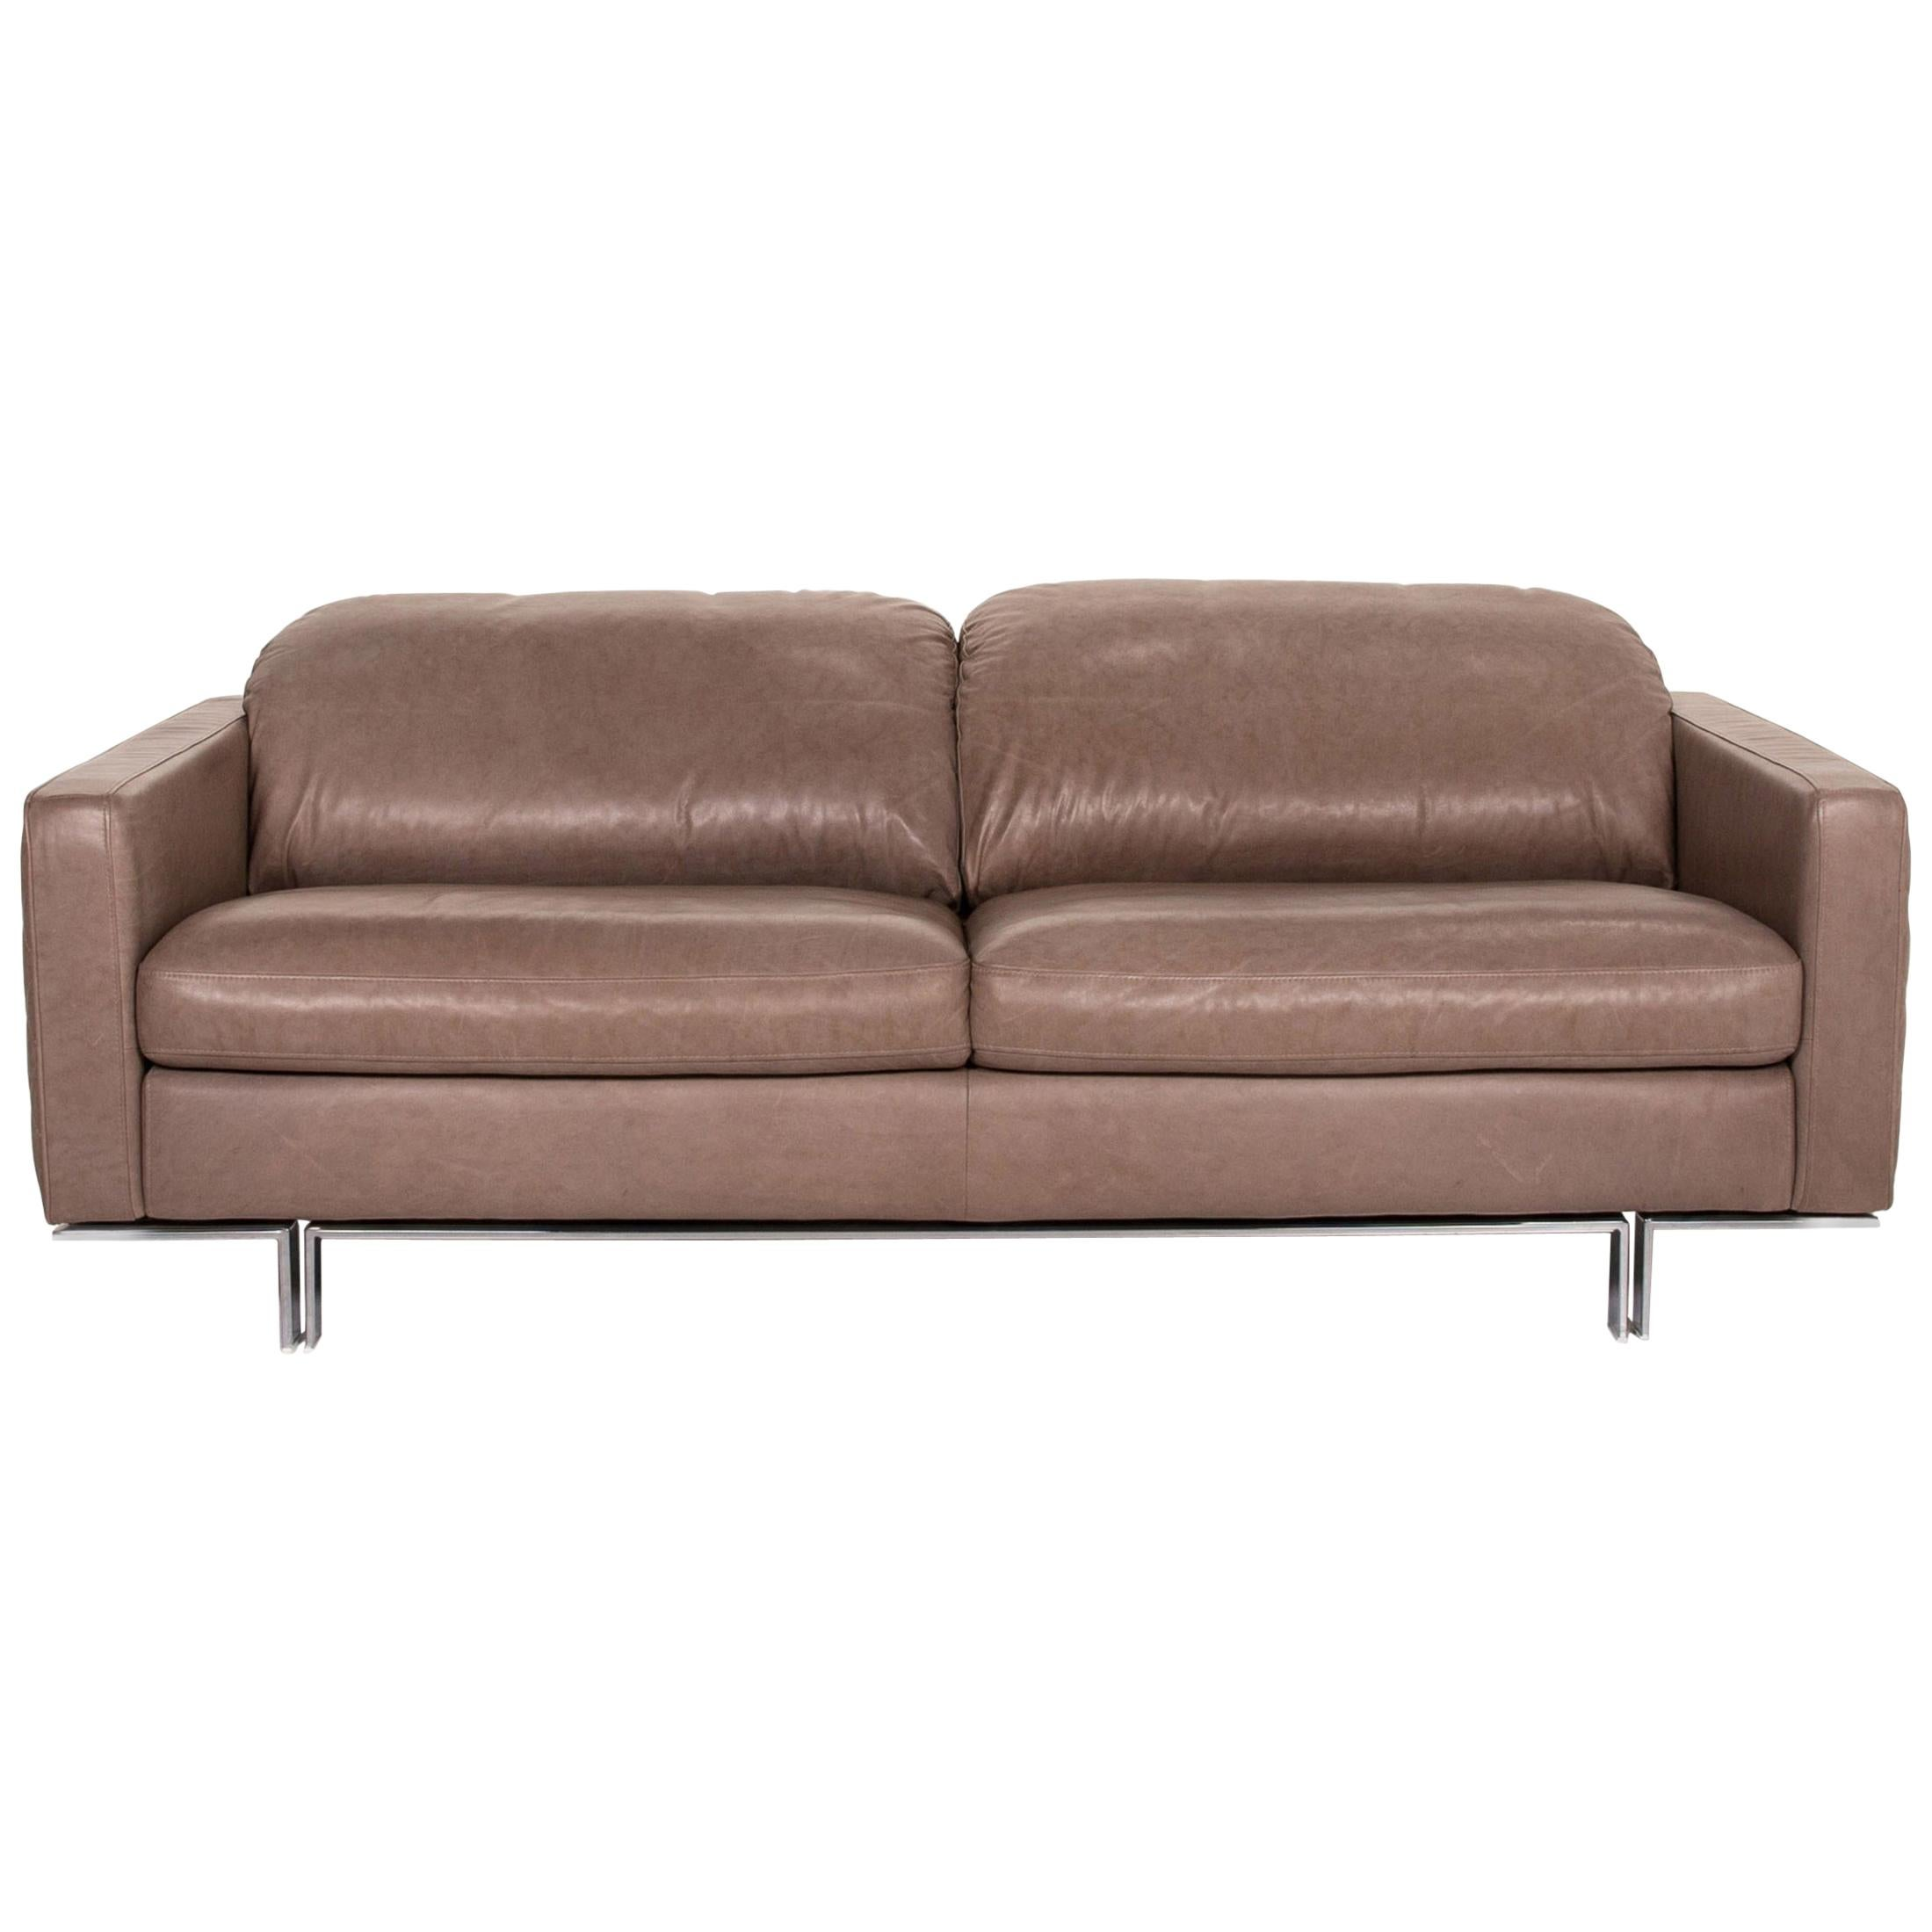 Willi Schillig Leather Sofa Gray Beige Two-Seat Couch